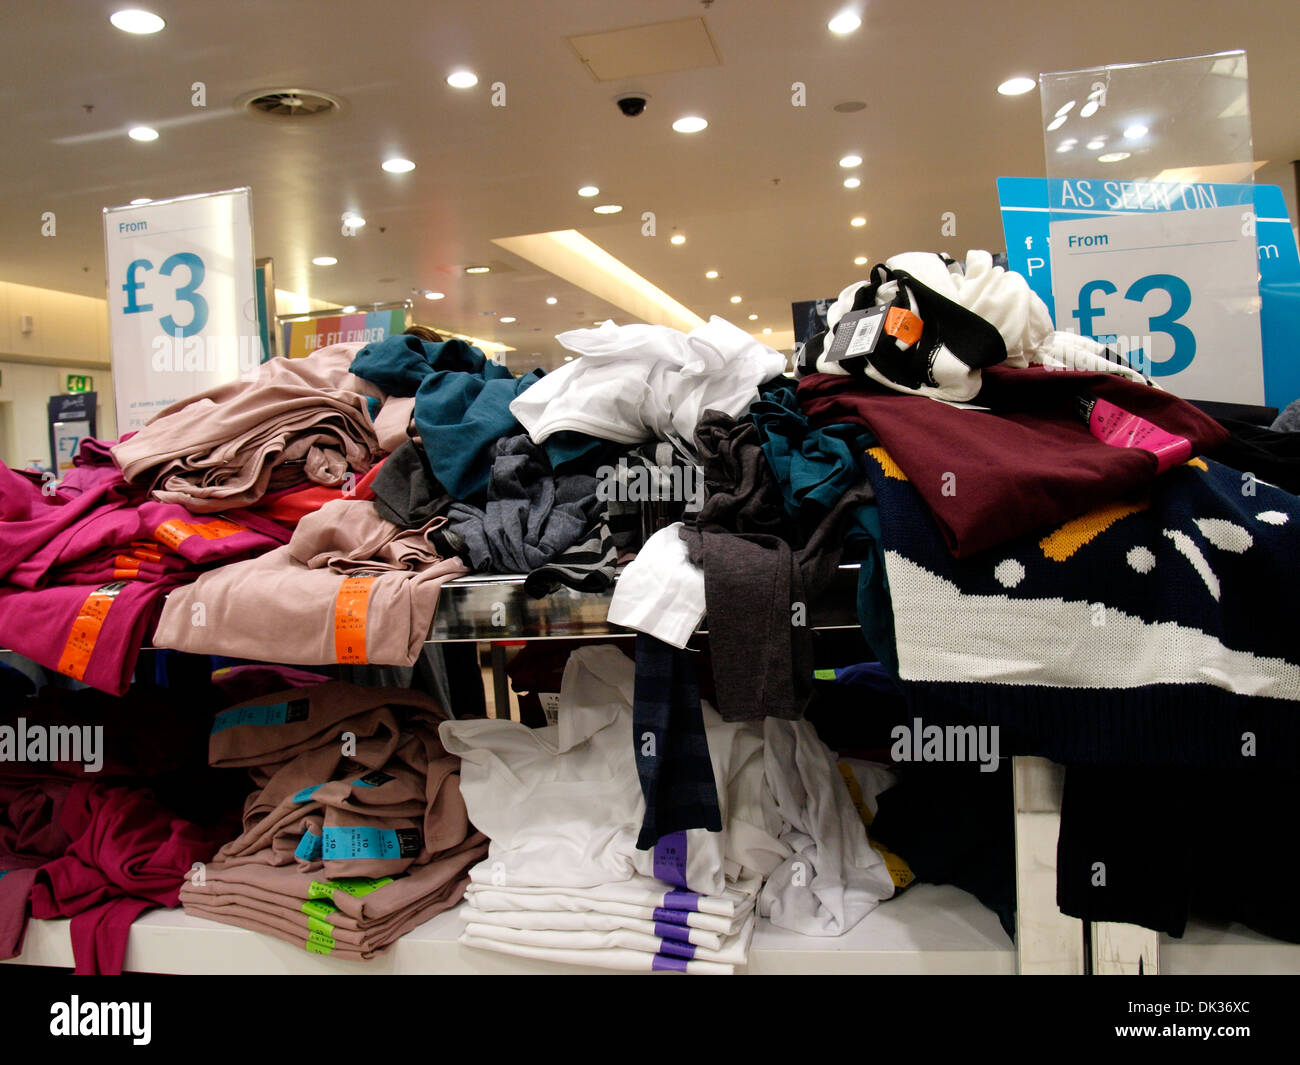 Shelves of cheap clothes for sale at Primark, Exeter, Devon, UK - Stock Image